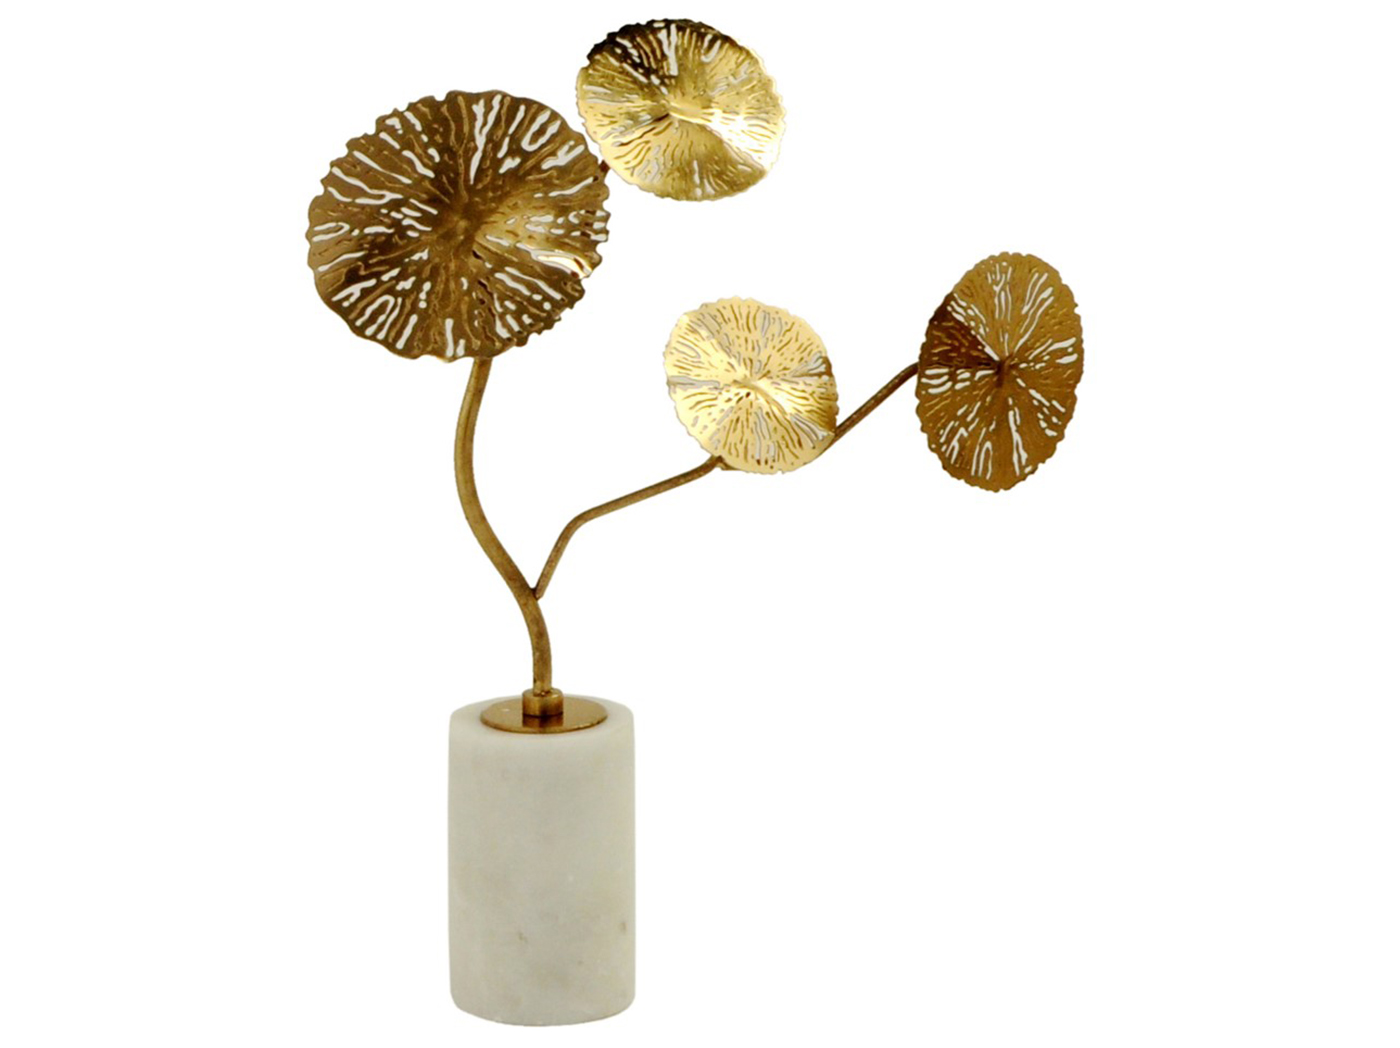 "Small Gold Metal Finish Flower Sculpture 2.8""W x 12""H"